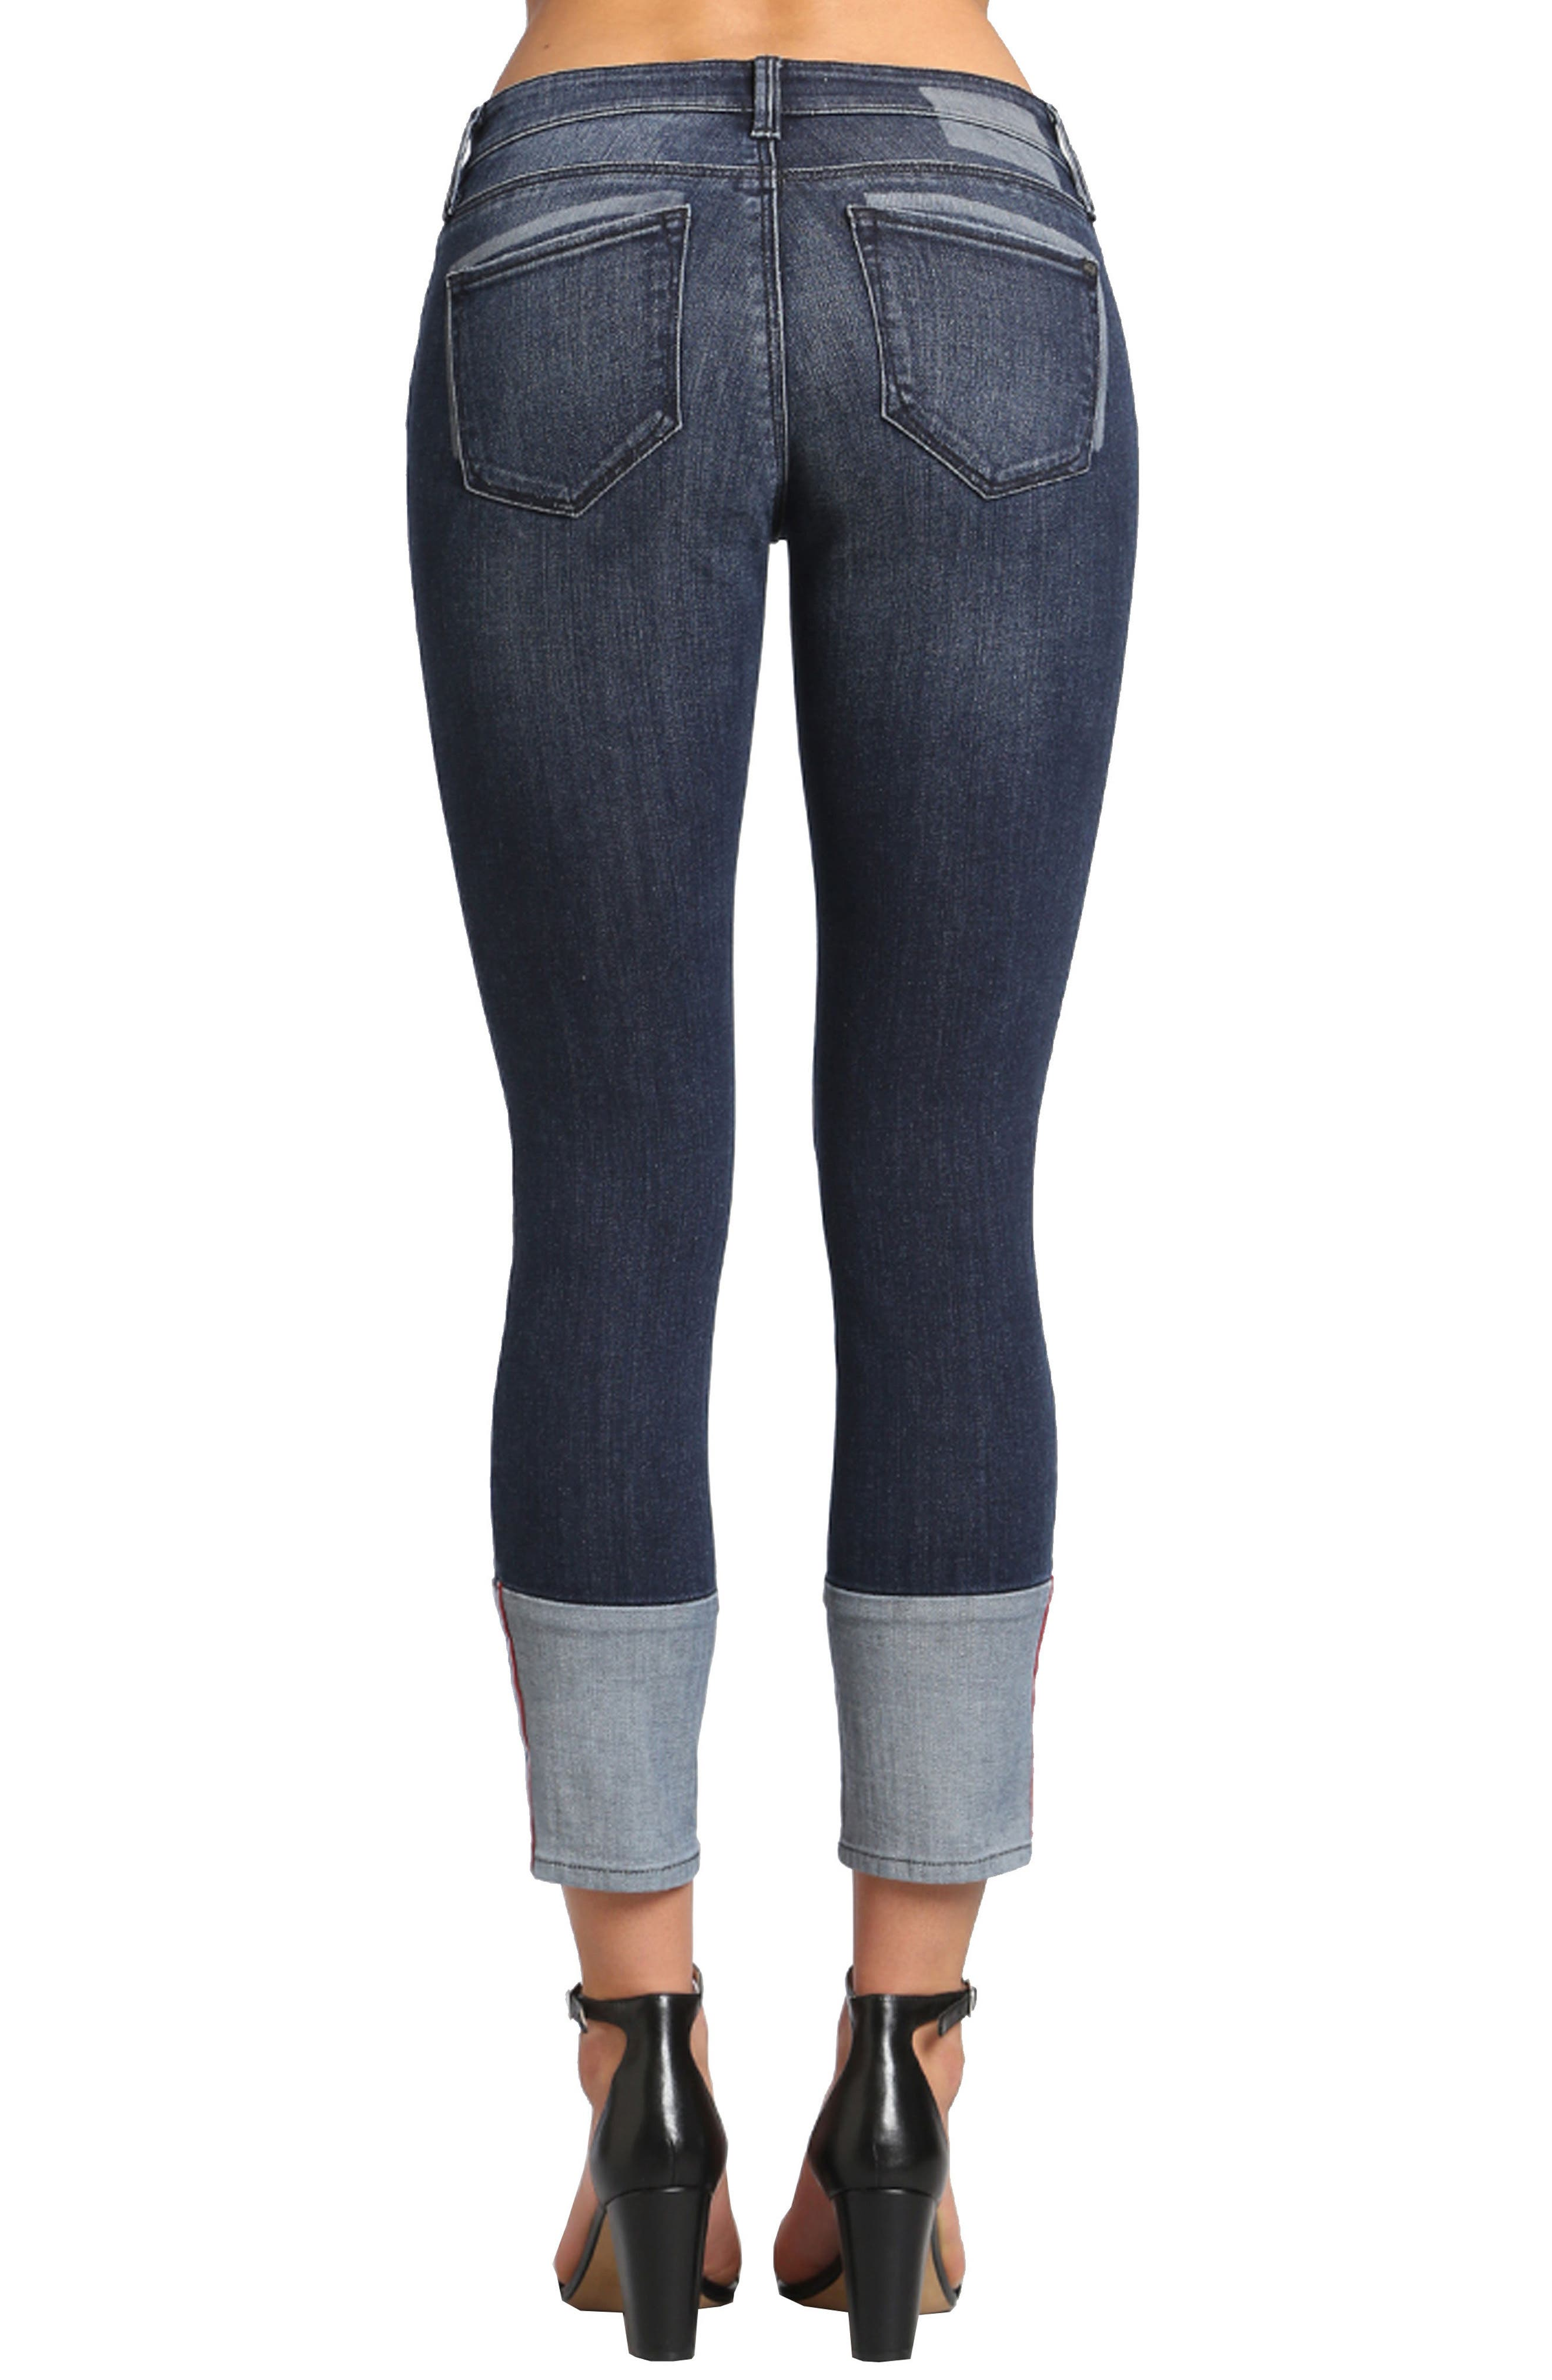 Caisy Cuffed Skinny Crop Jeans,                             Alternate thumbnail 2, color,                             Dark Vintage